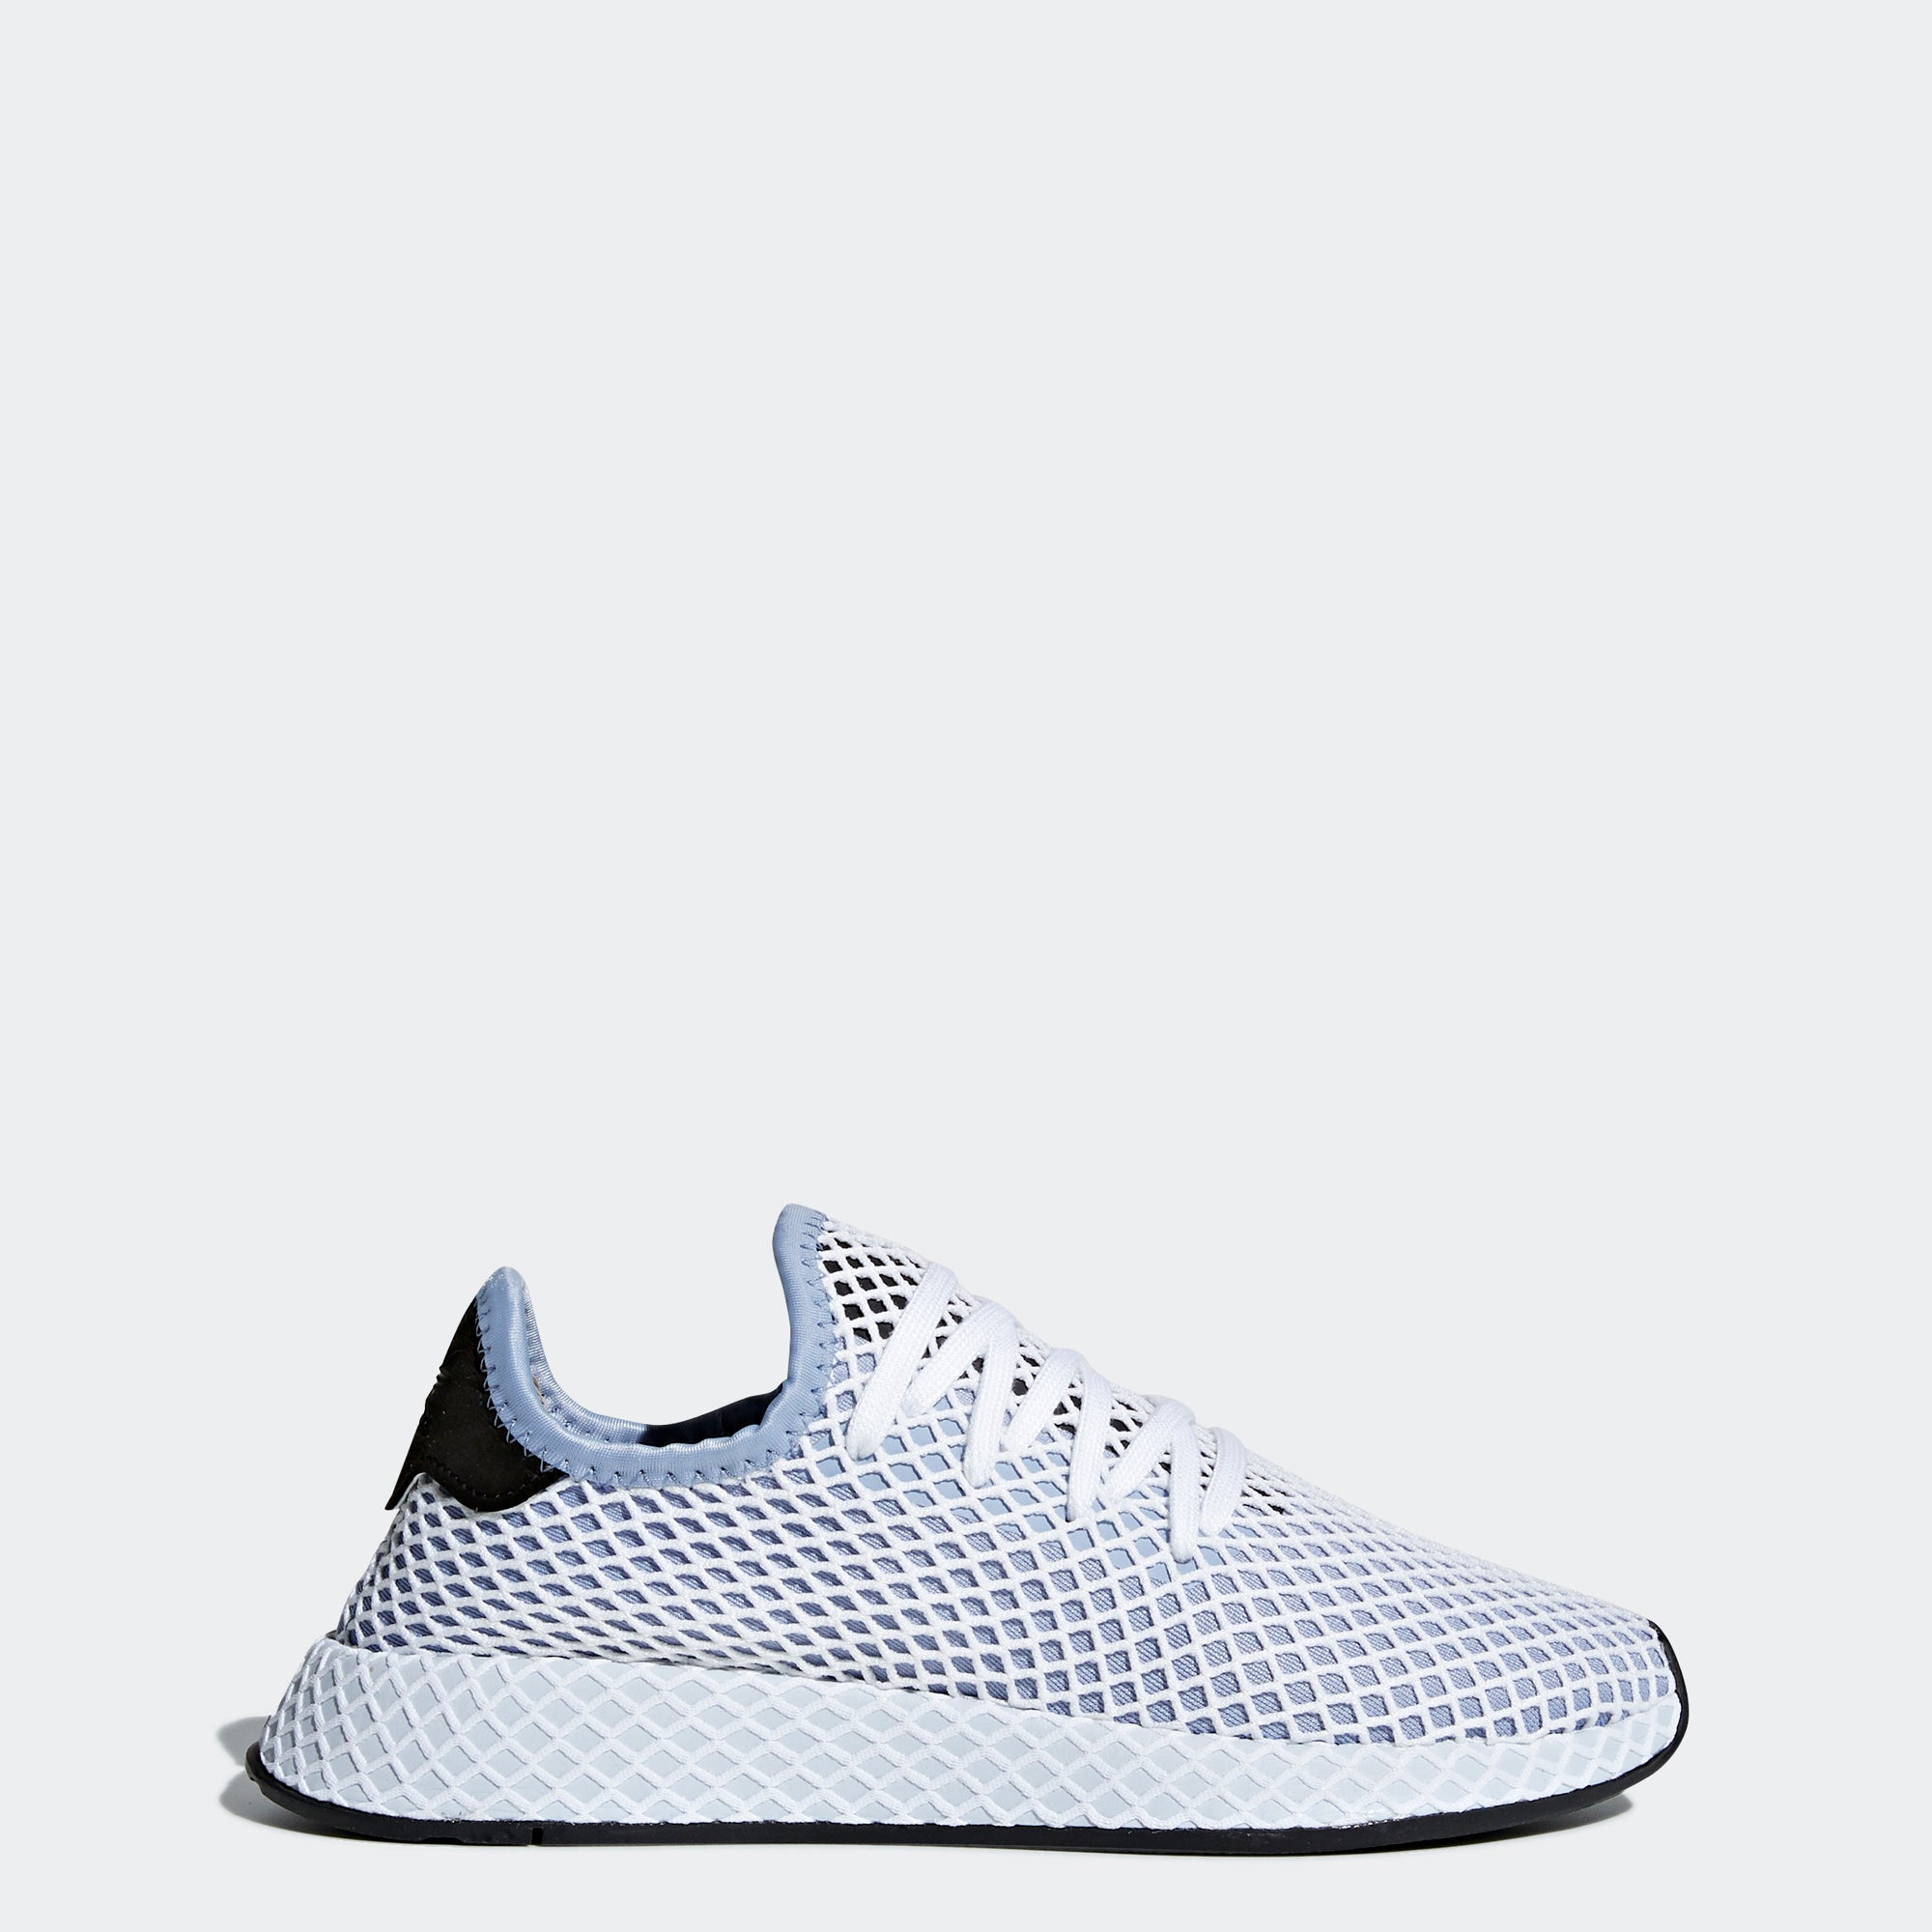 484dfc97b Women s adidas Originals Deerupt Runner Shoes Chalk Blue CQ2912 ...